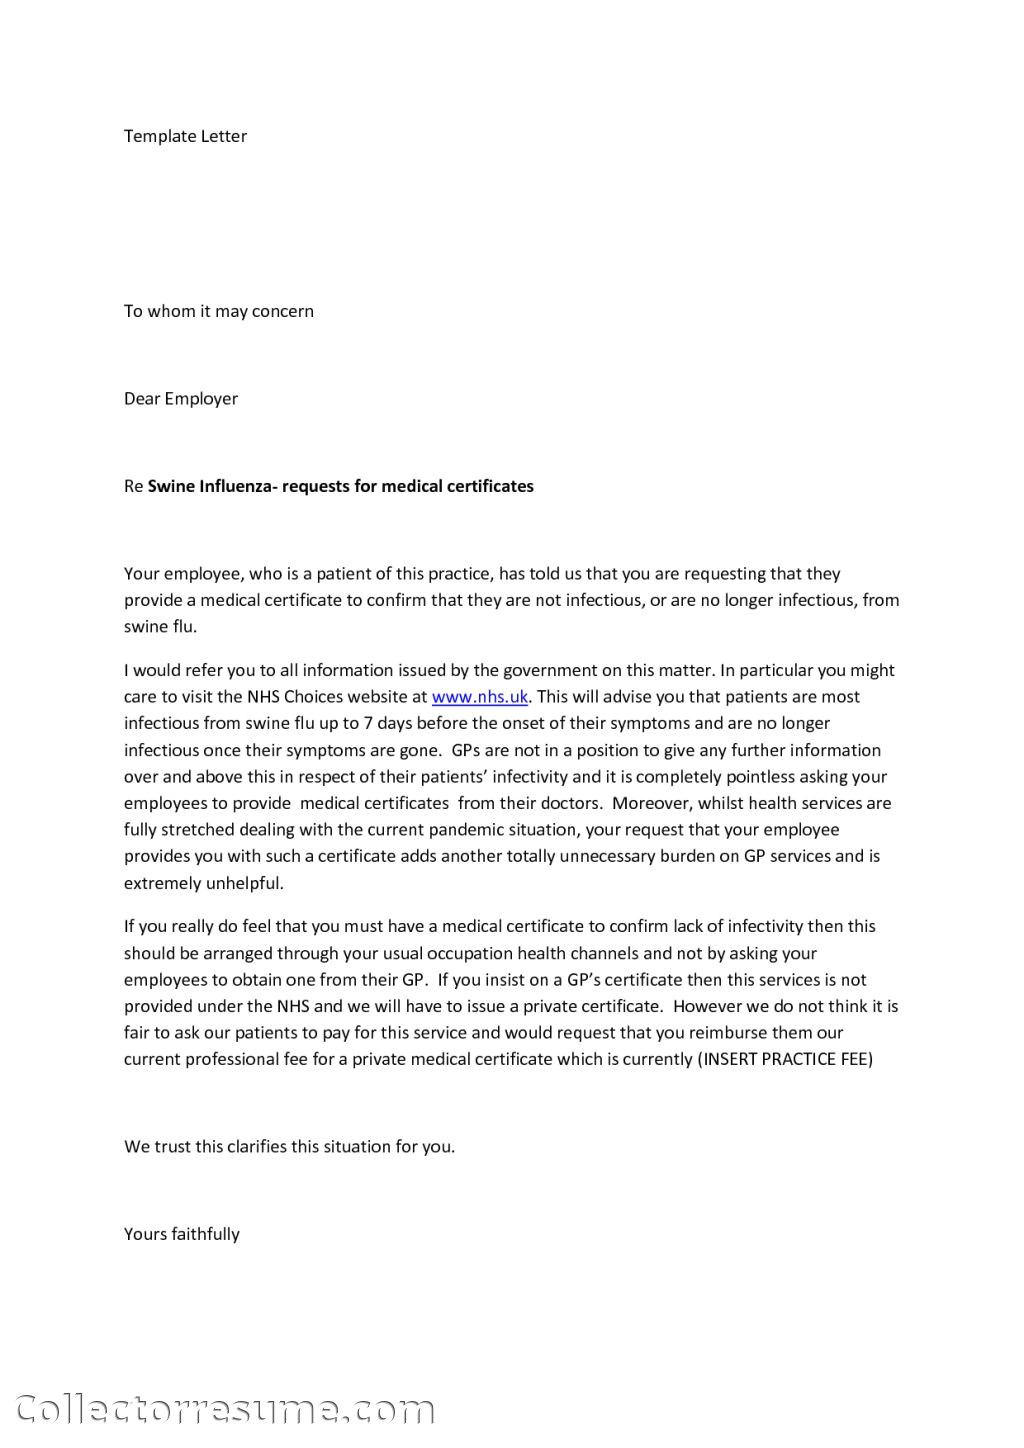 resume cover letter samples to whom it may concern